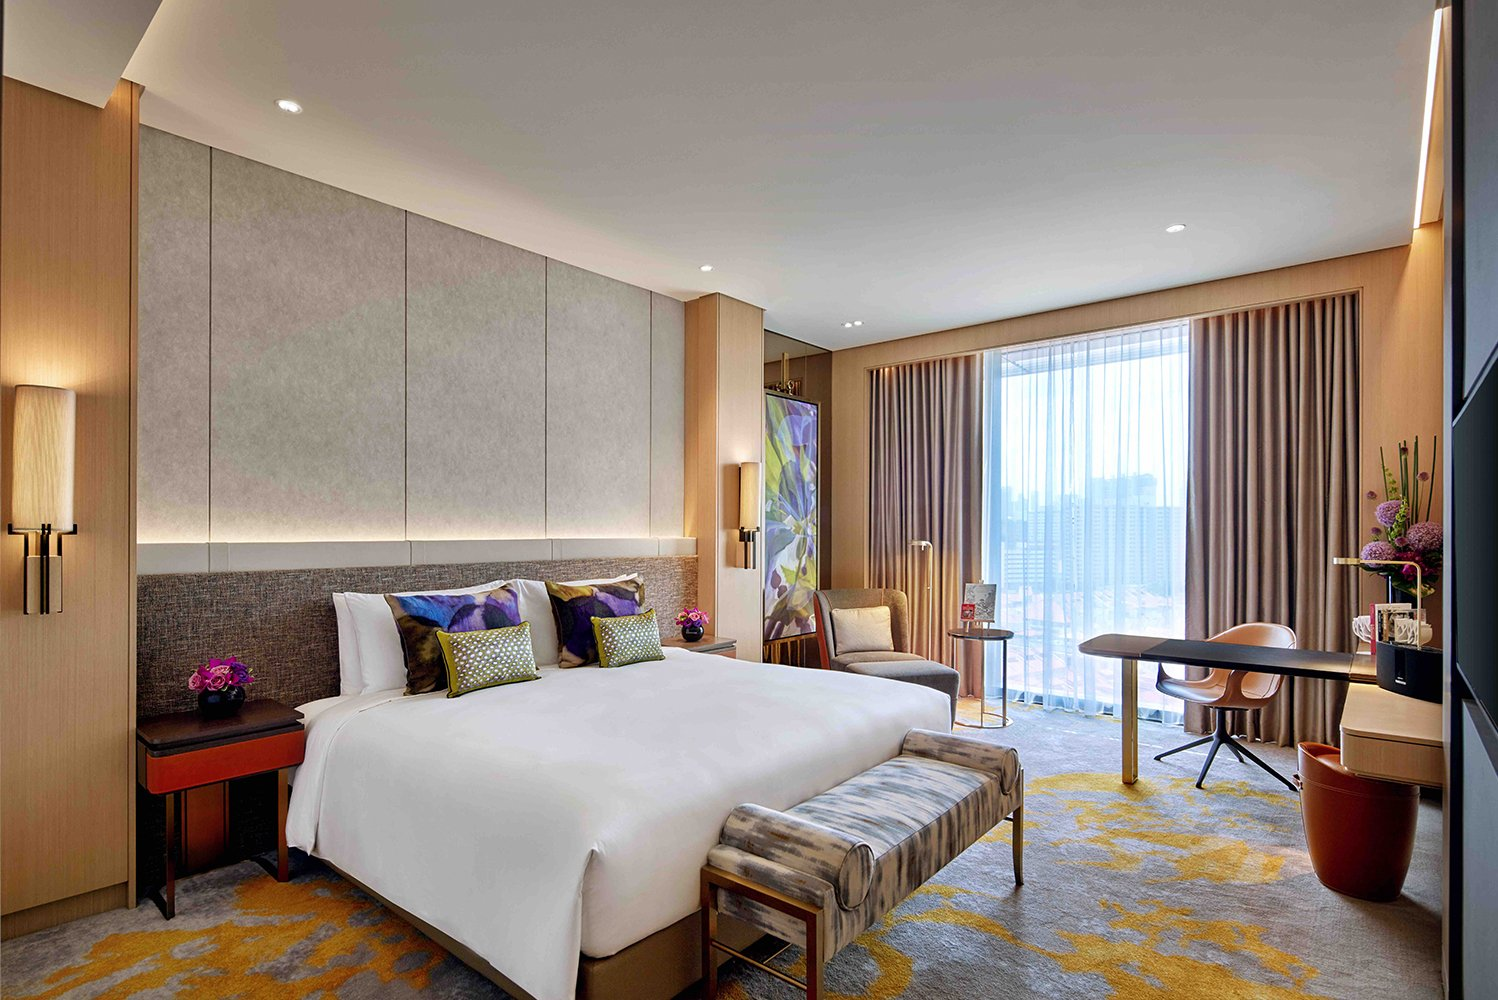 The 223-room luxury hotel was designed to reflect Singapore's cultural heritage with French flair.